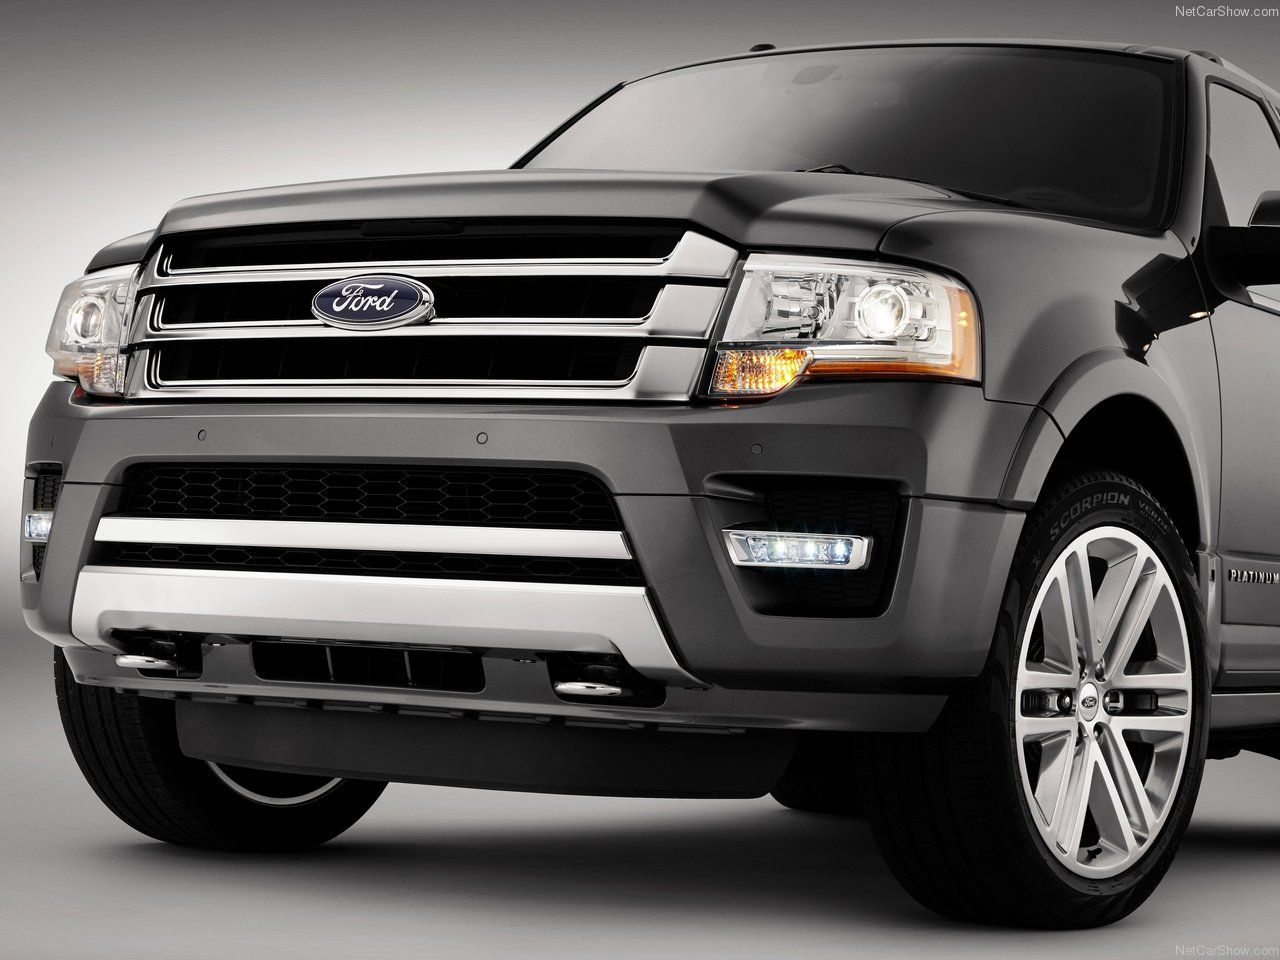 2015 Ford Expedition Car Pictures Ford expedition